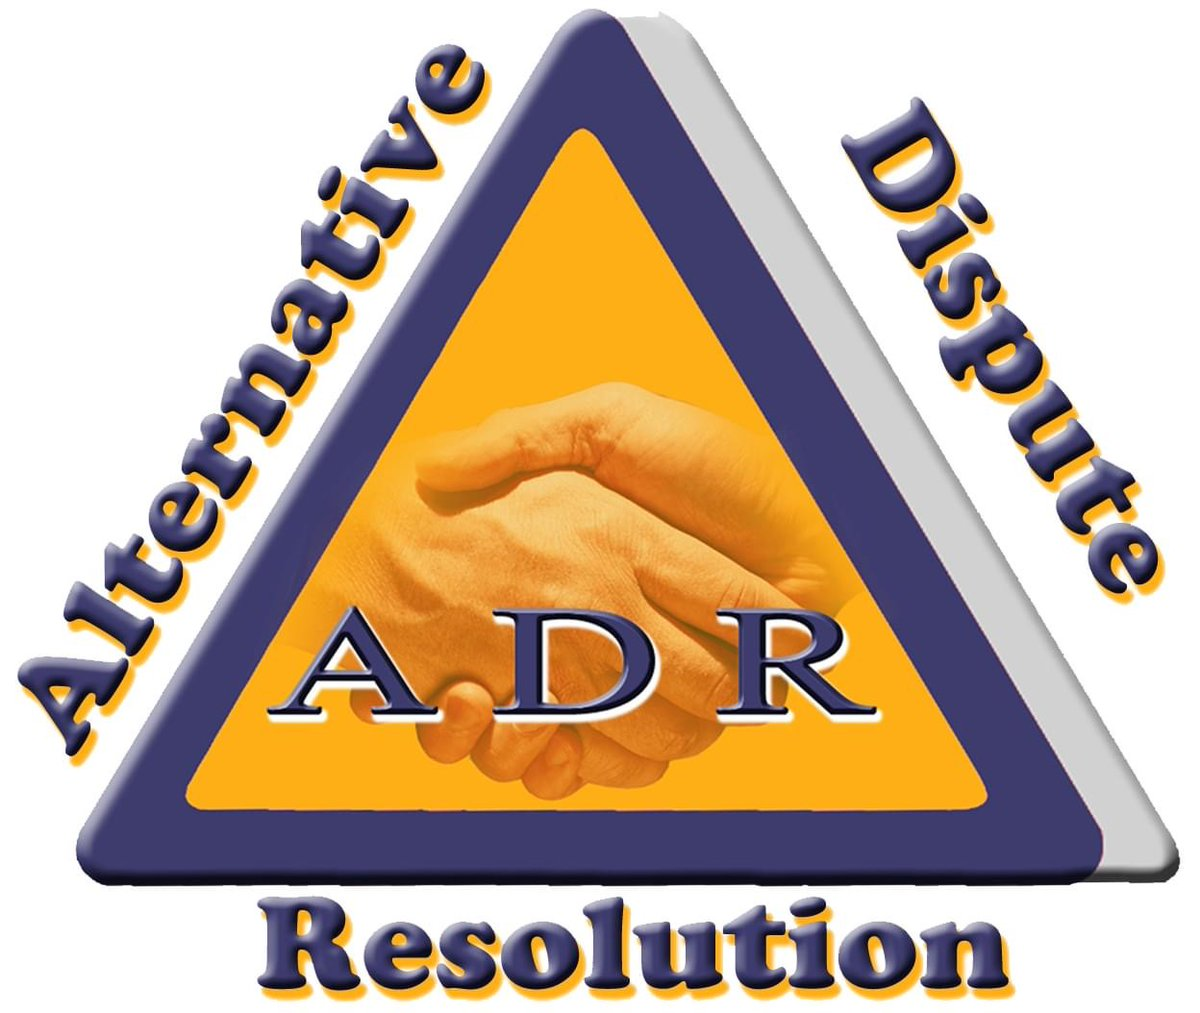 In a dispute? #ADR might be the answer! 💡 Taylor's Larry Thomas, will be a presenter next Wednesday for @caipadelval virtual seminar providing an overview of #AlternativeDisputeResolution 🗣🤝 Don't miss your chance to register -https://t.co/s6YMUOOO8B https://t.co/Xus5JnaMVF